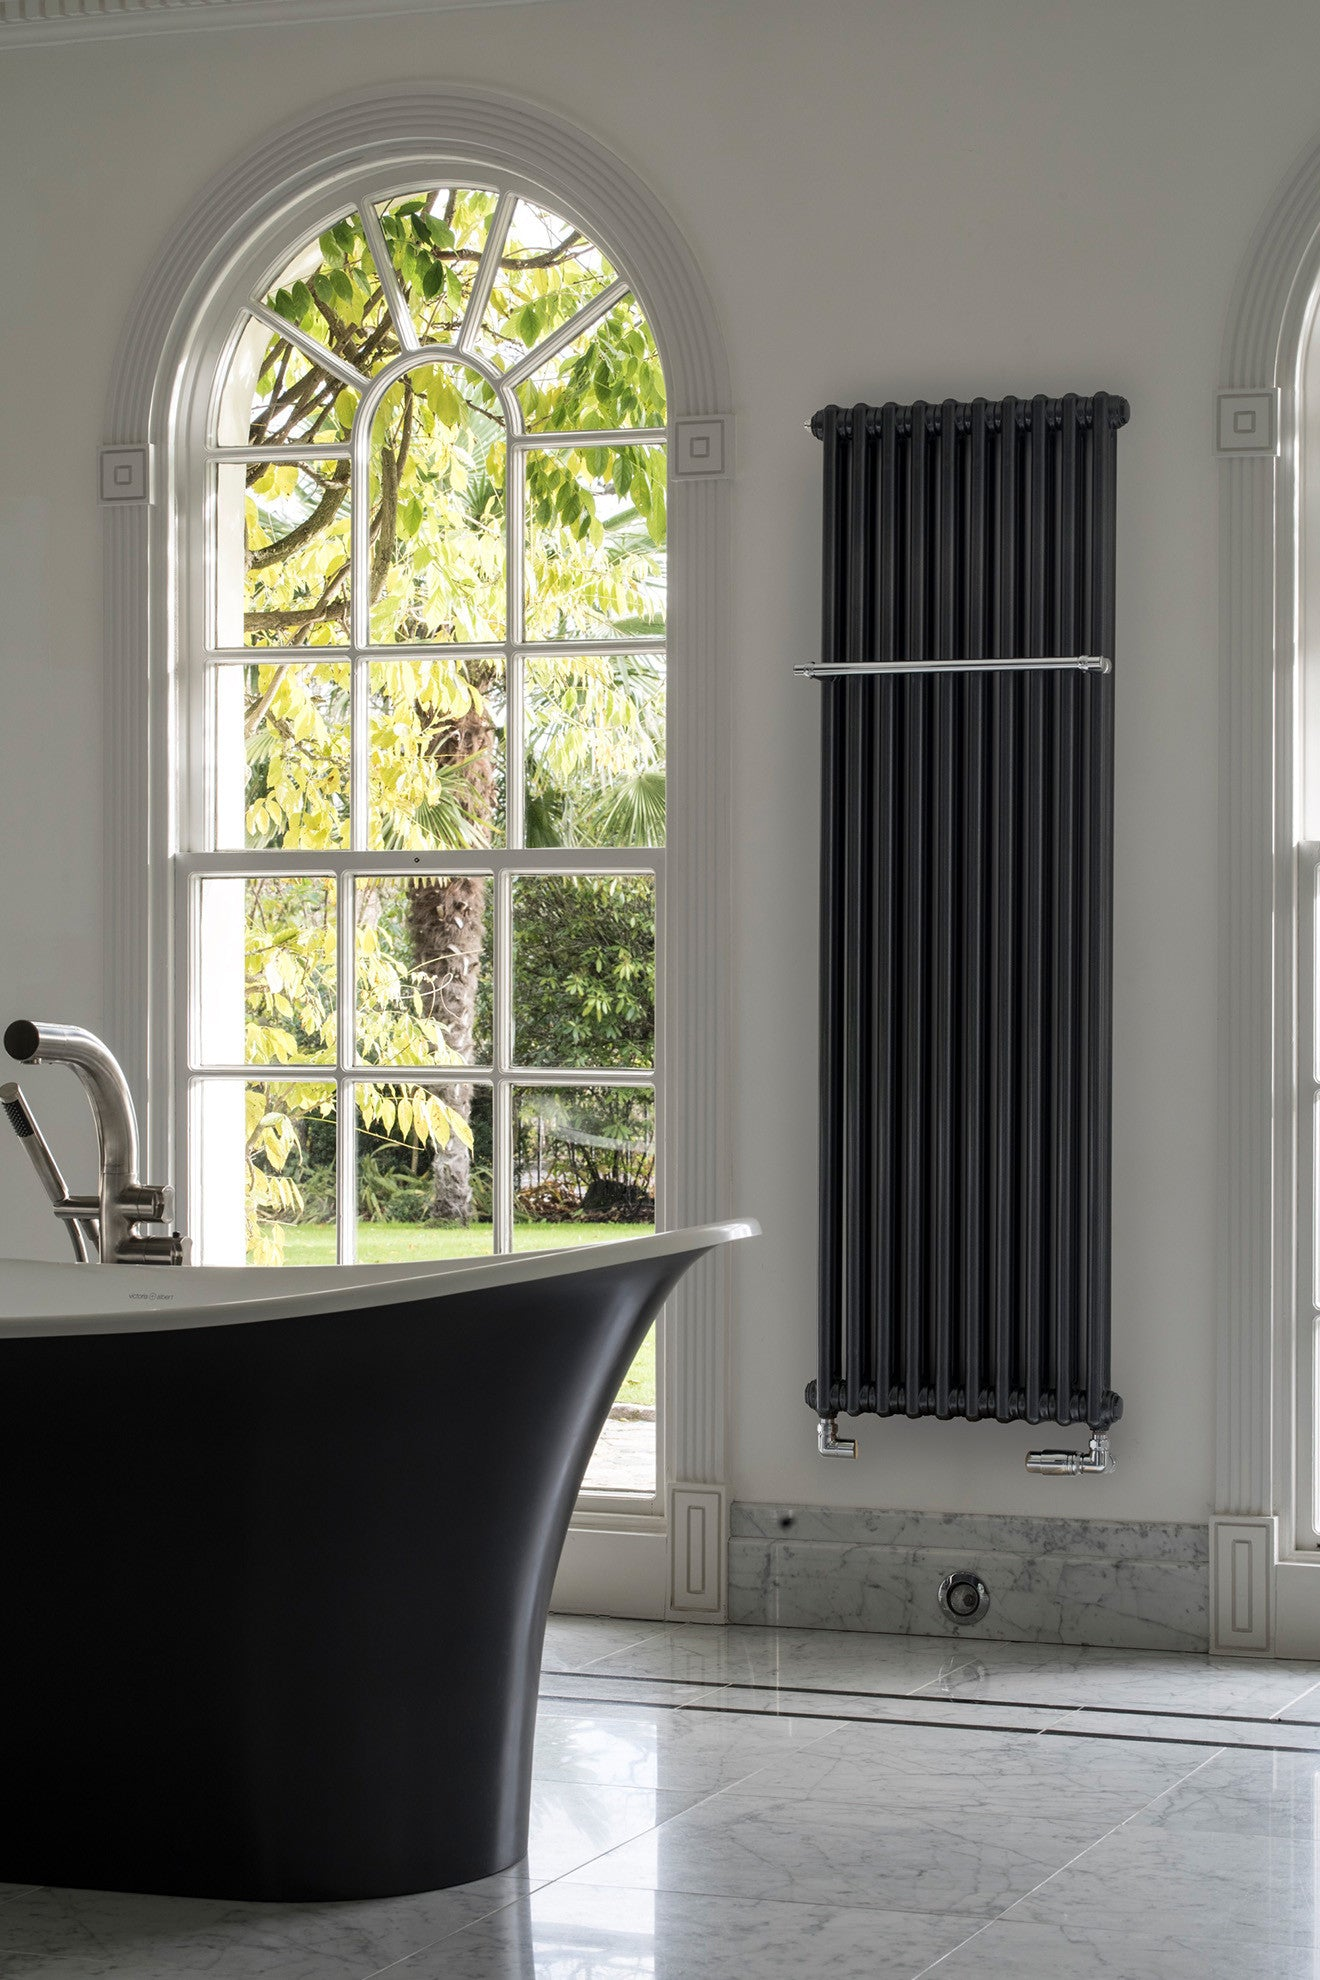 Luxury bathroom tall black radiator from Bisque radiators